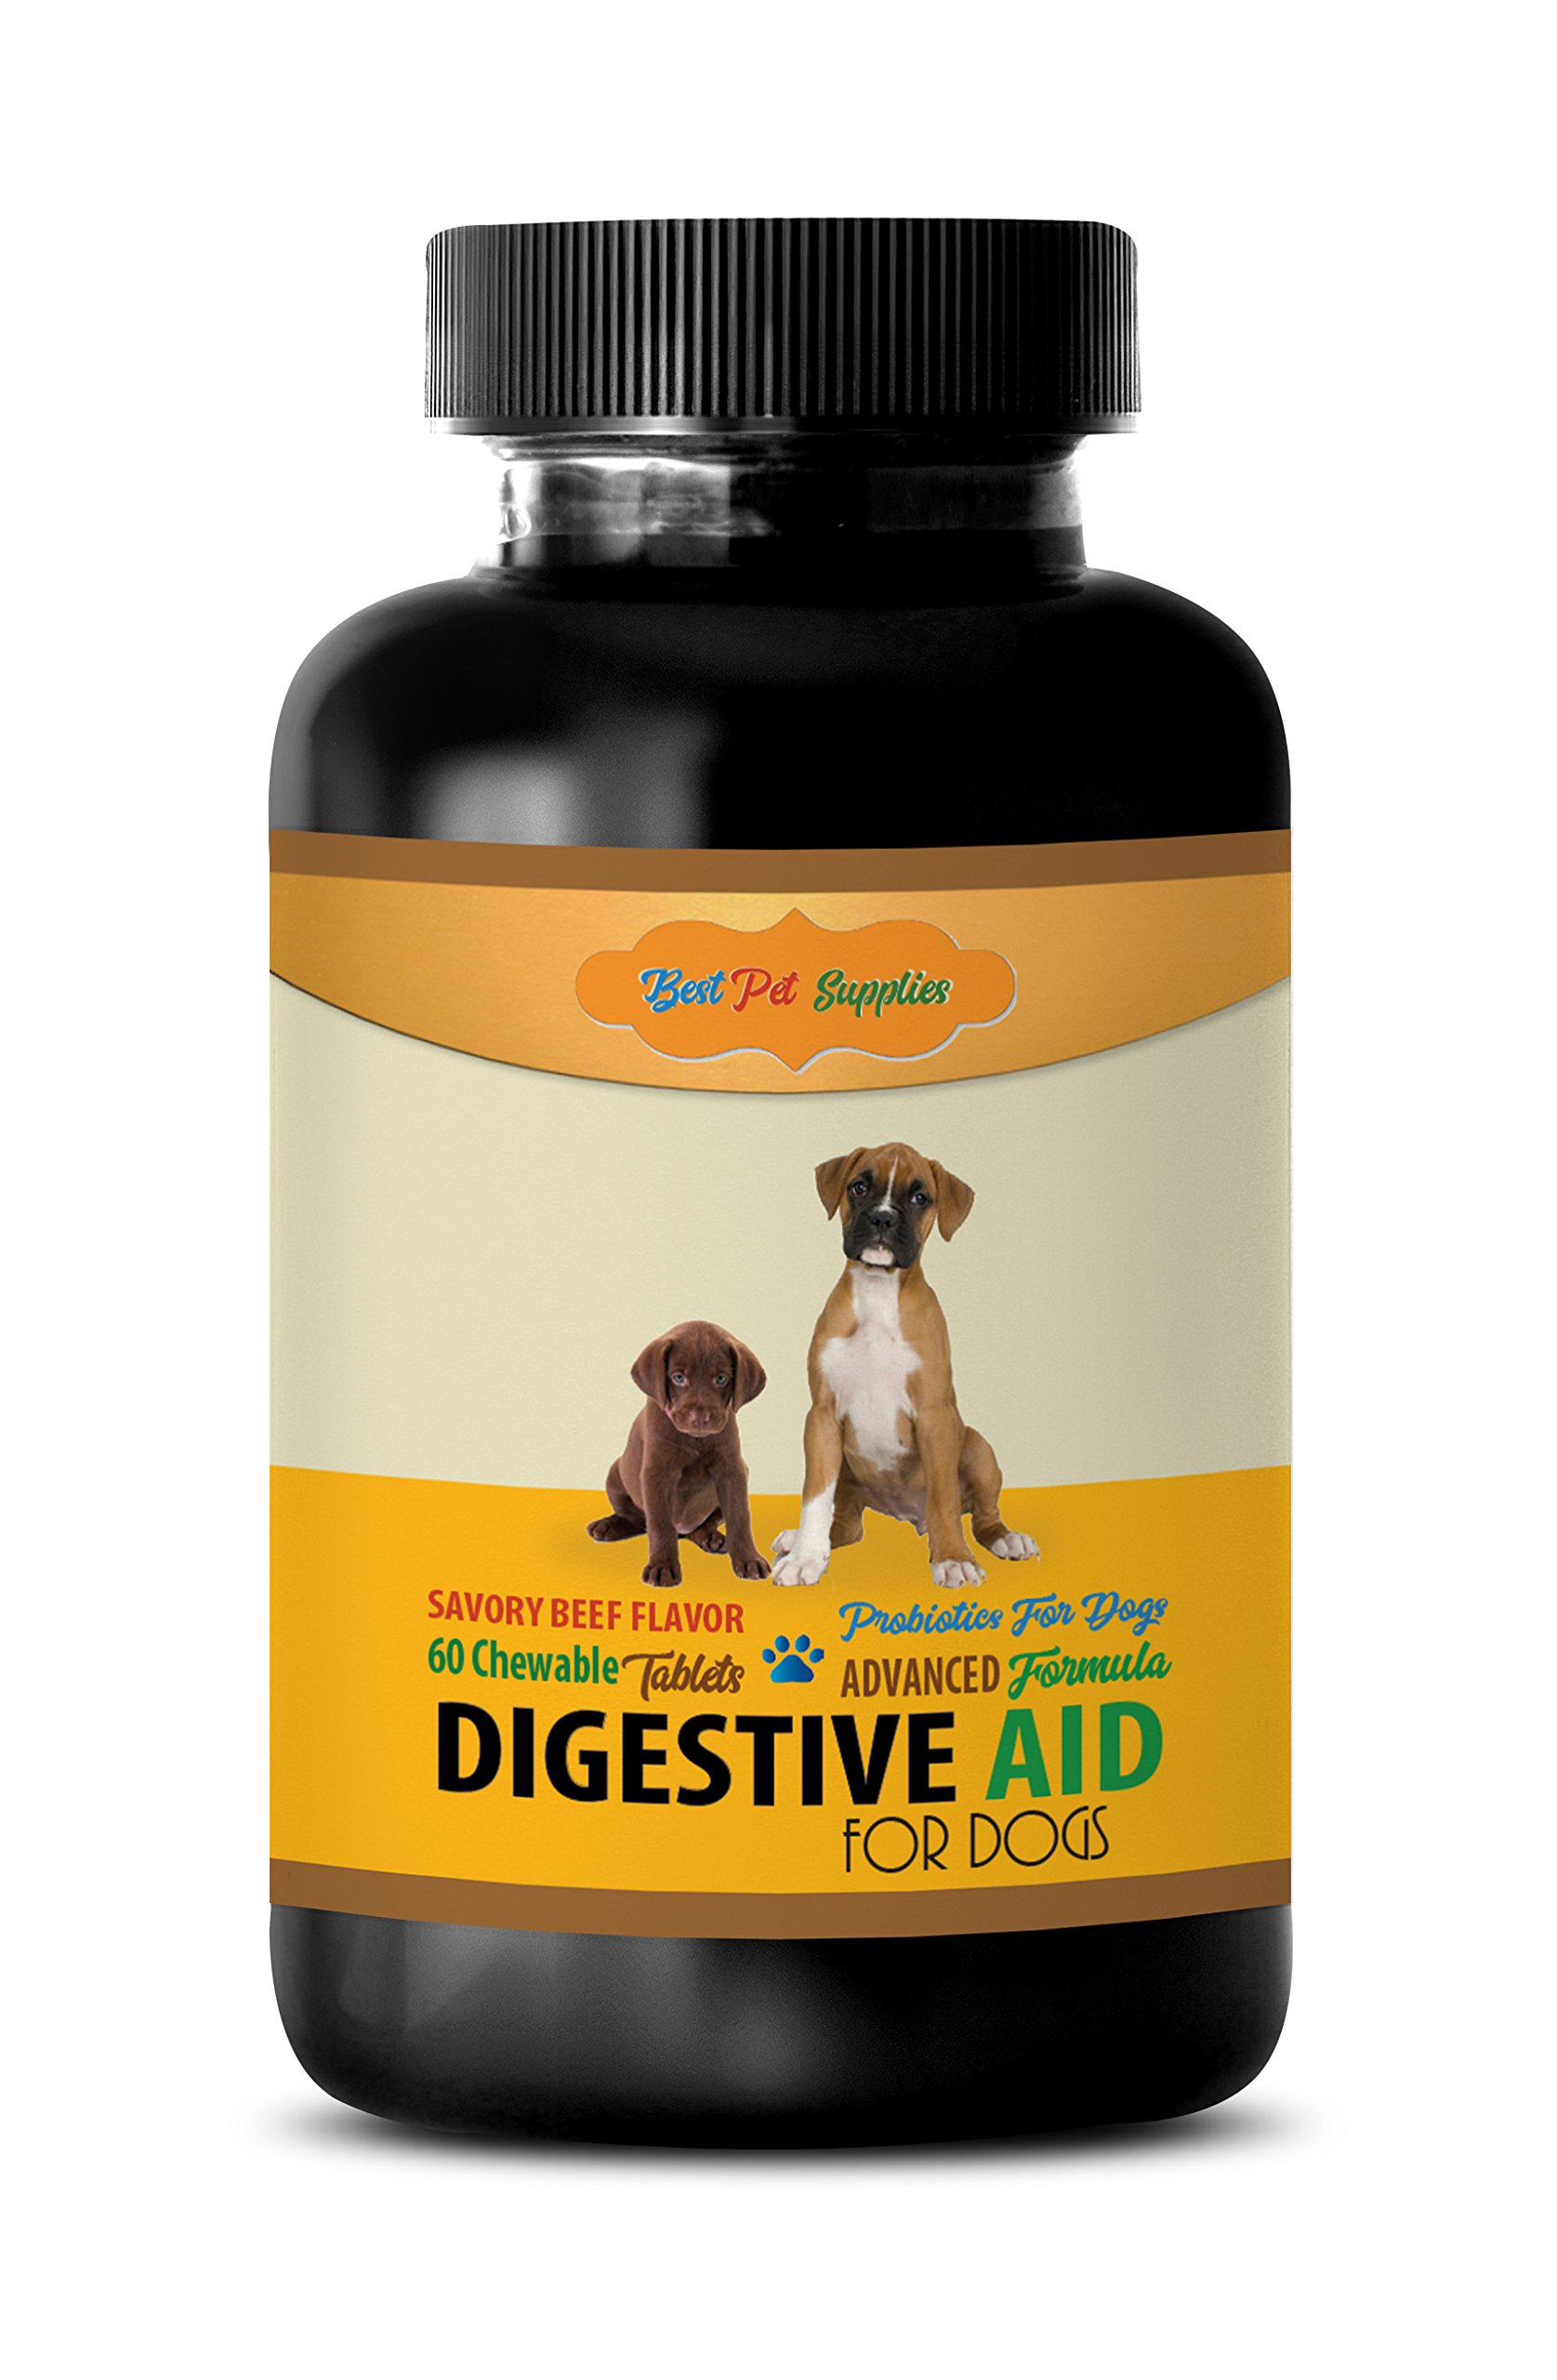 BEST PET SUPPLIES LLC pet digestive enzymes for dog - DIGESTIVE AID - FOR DOGS ONLY - PROBIOTICS - BEEF FLAVOR - CHEWABLE - bifidobacterium bifidum - 60 Chews (1 Bottle)